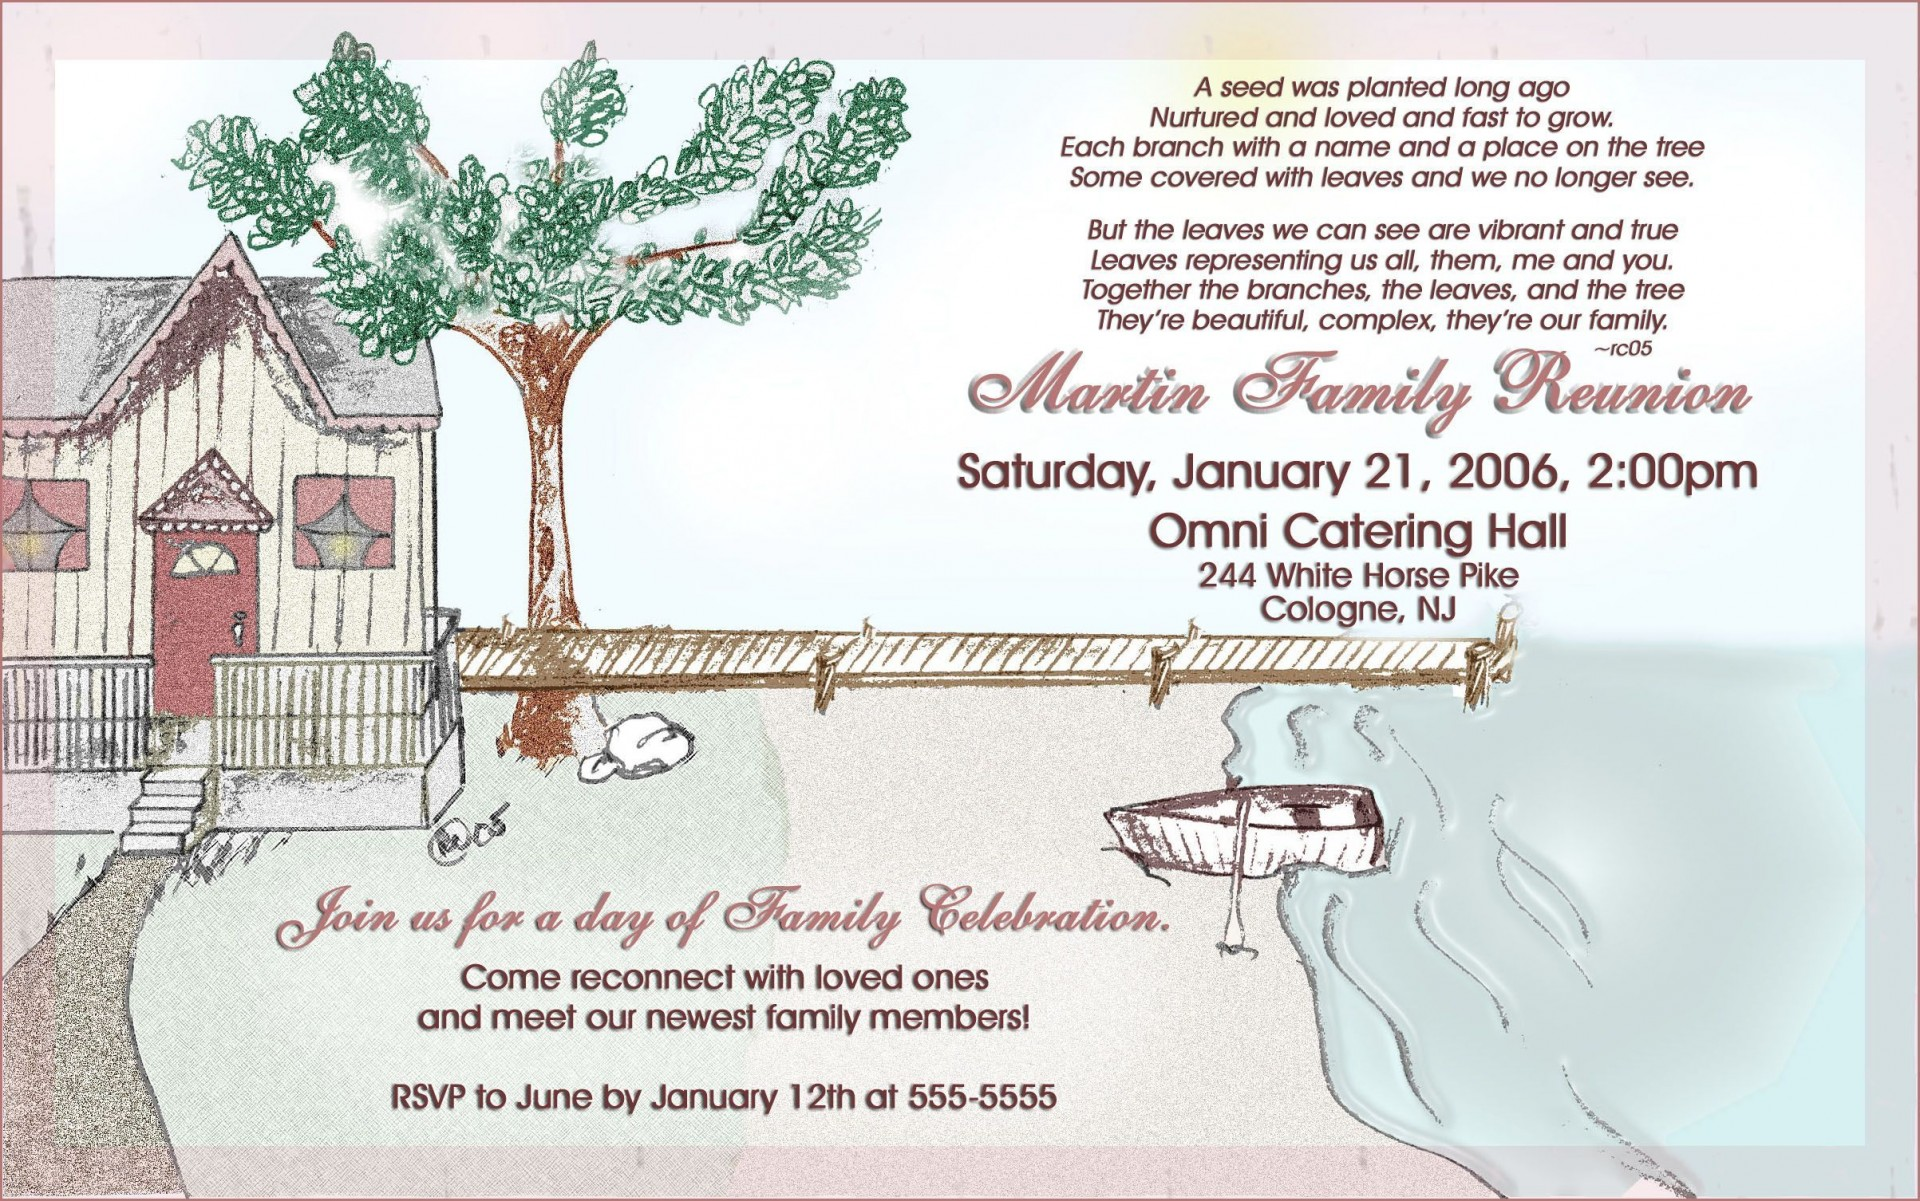 003 Unusual Family Reunion Flyer Template Free Inspiration  Downloadable Printable Invitation1920